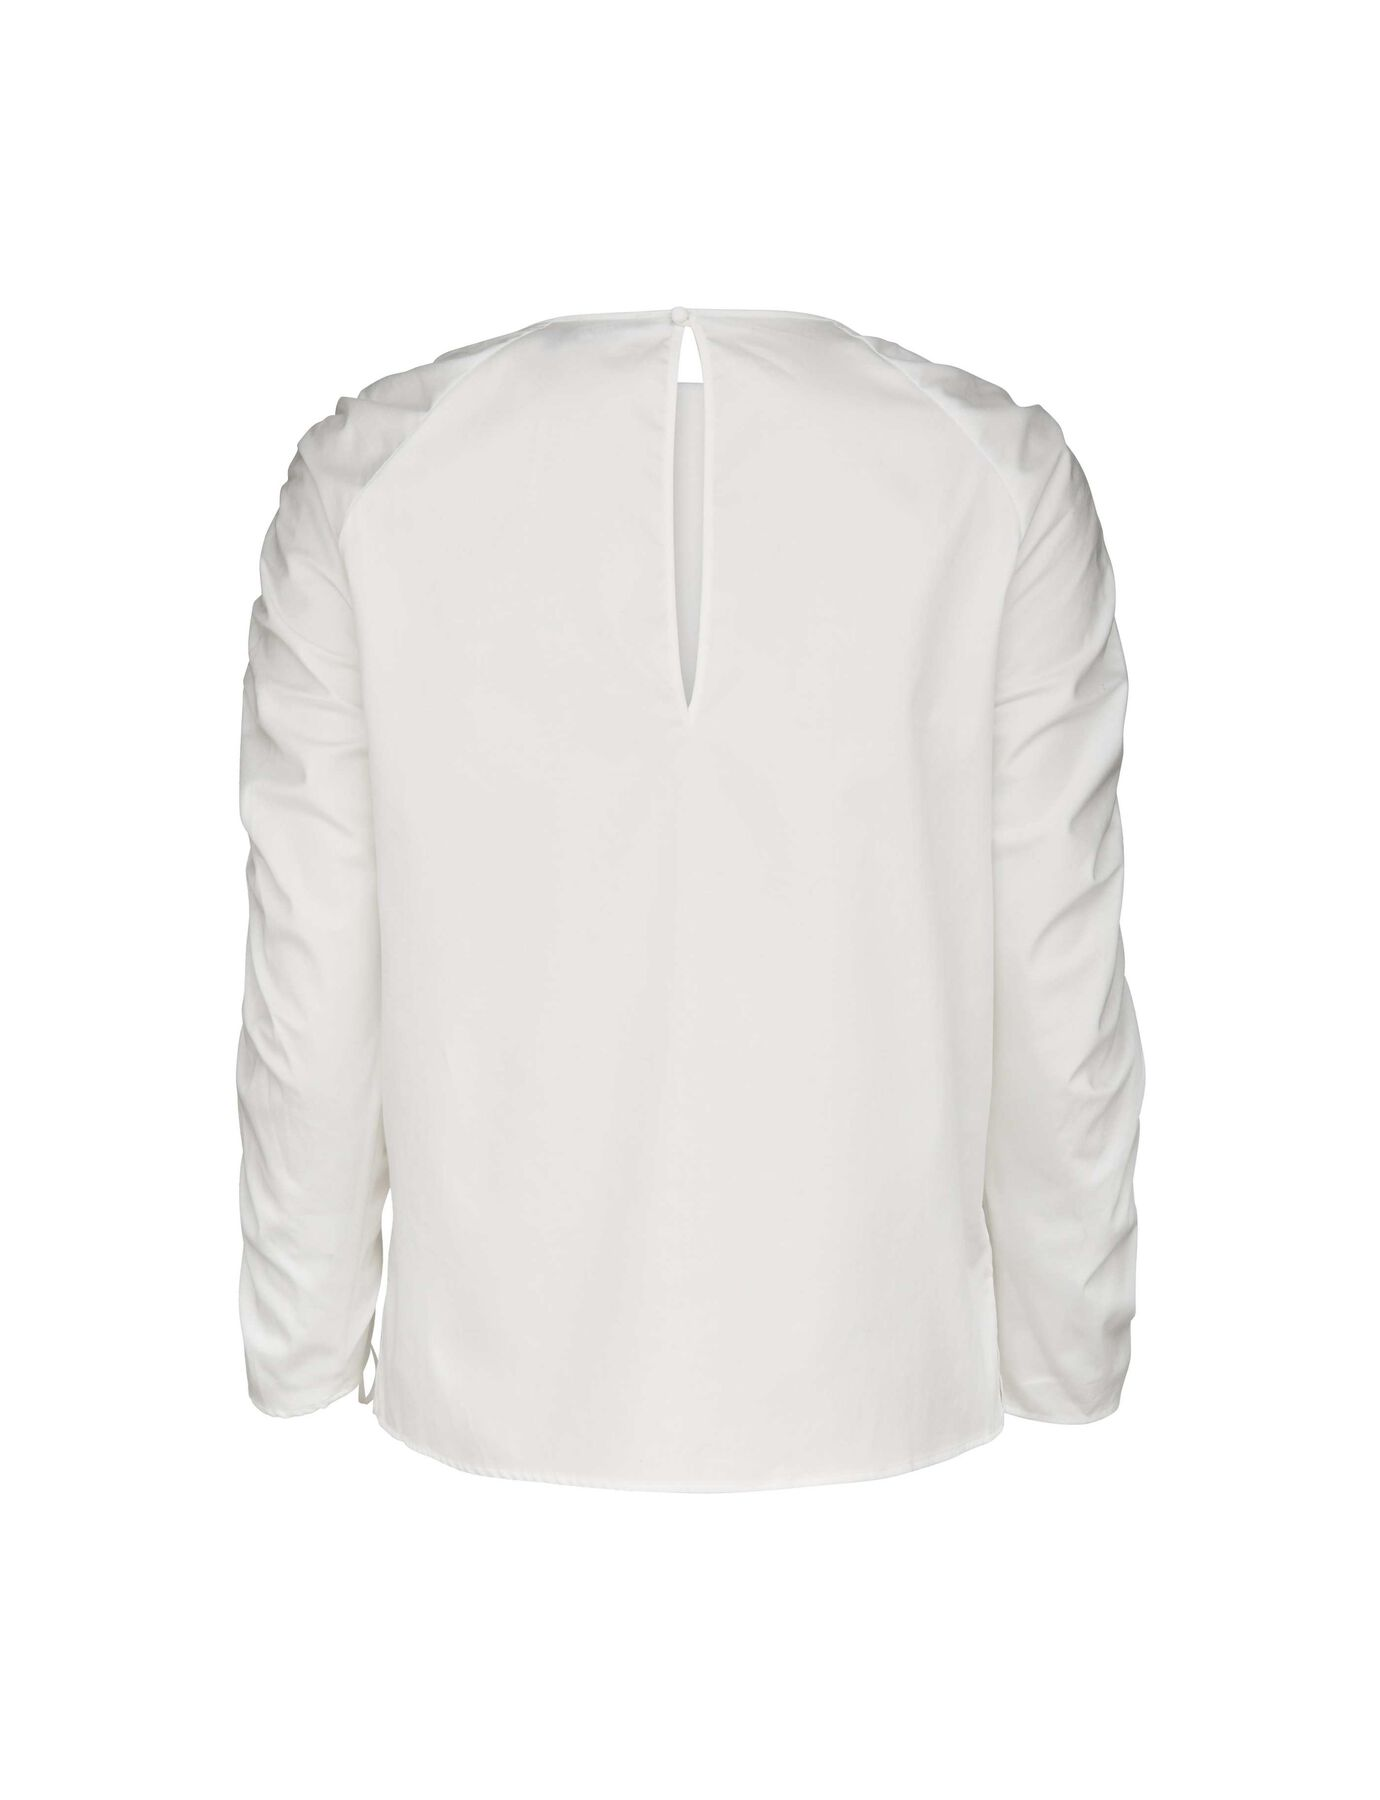 RIMA BLOUSE in Bright White from Tiger of Sweden